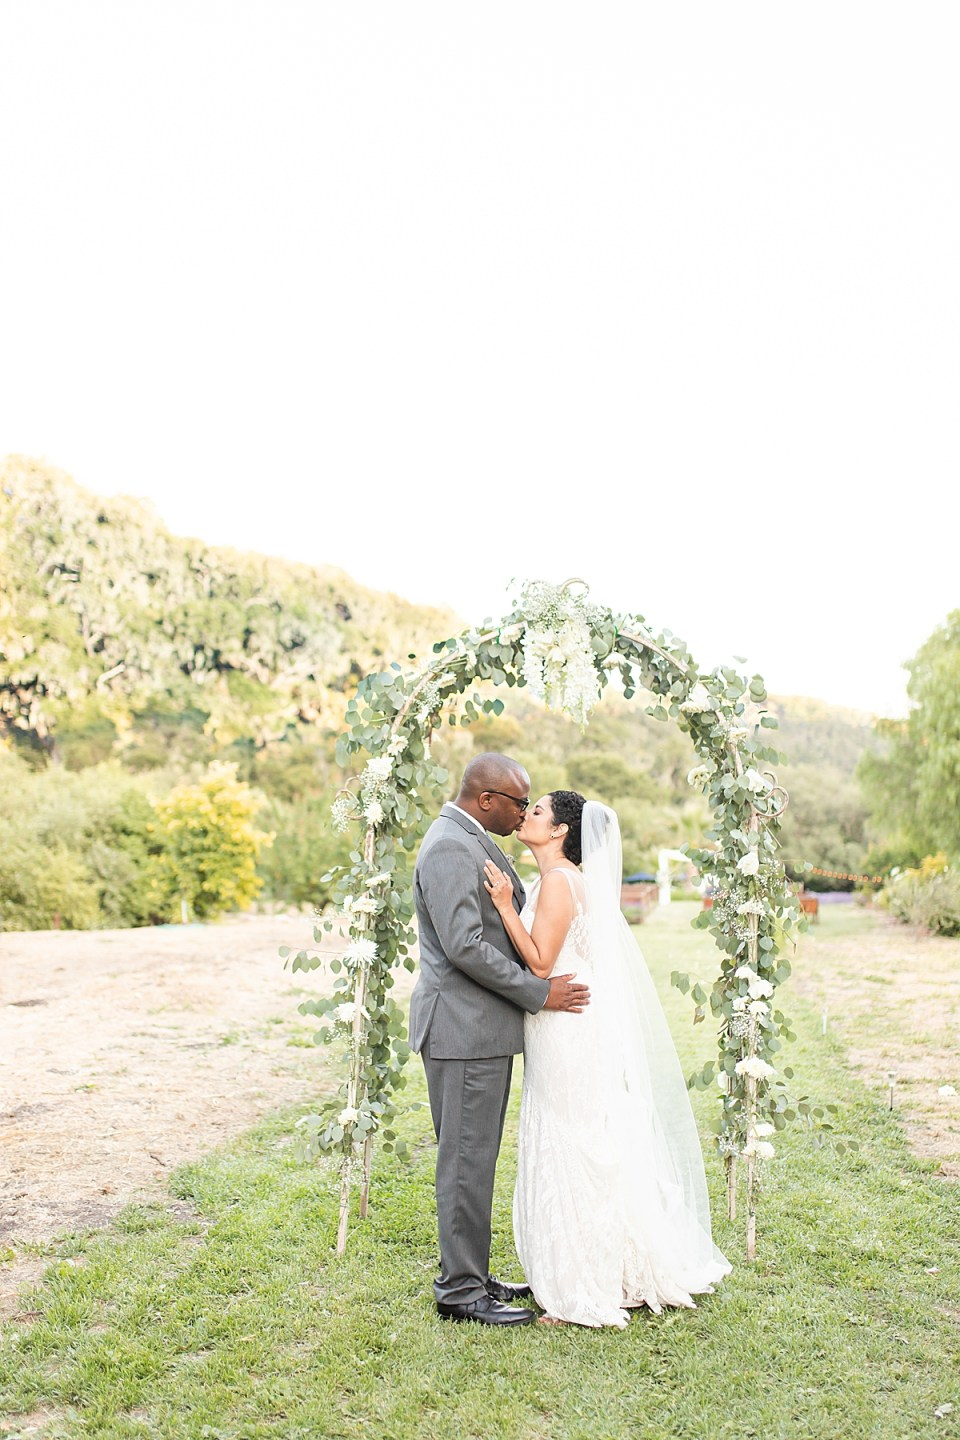 Brandi & Victor sharing a kiss under a trellis filled with flowers and greenery